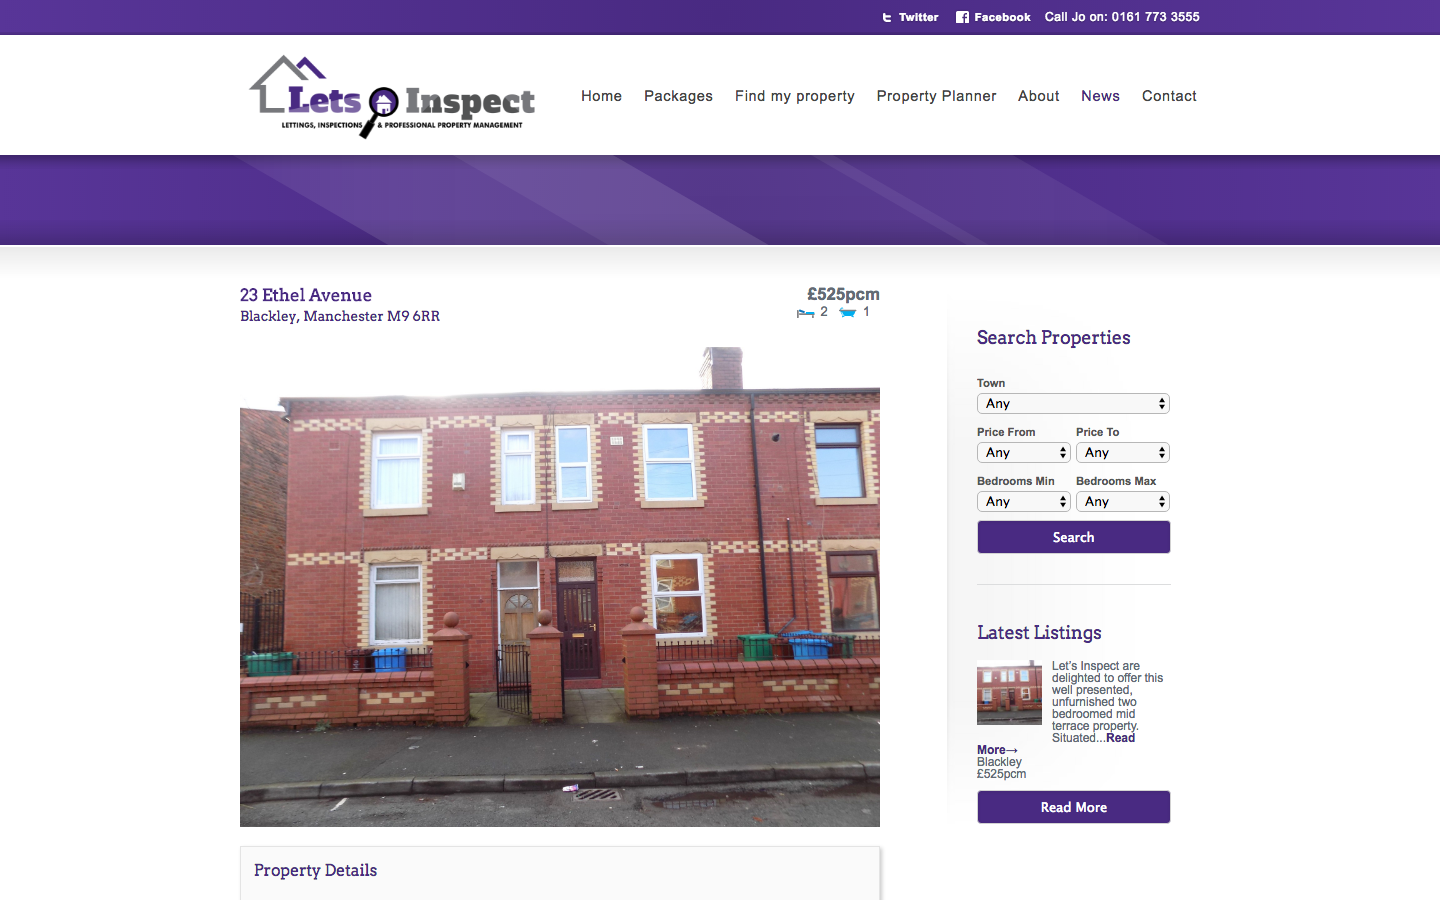 Screen Shot 2016 05 19 at 15.55.19 - Branding, web design and marketing campaign for property management company